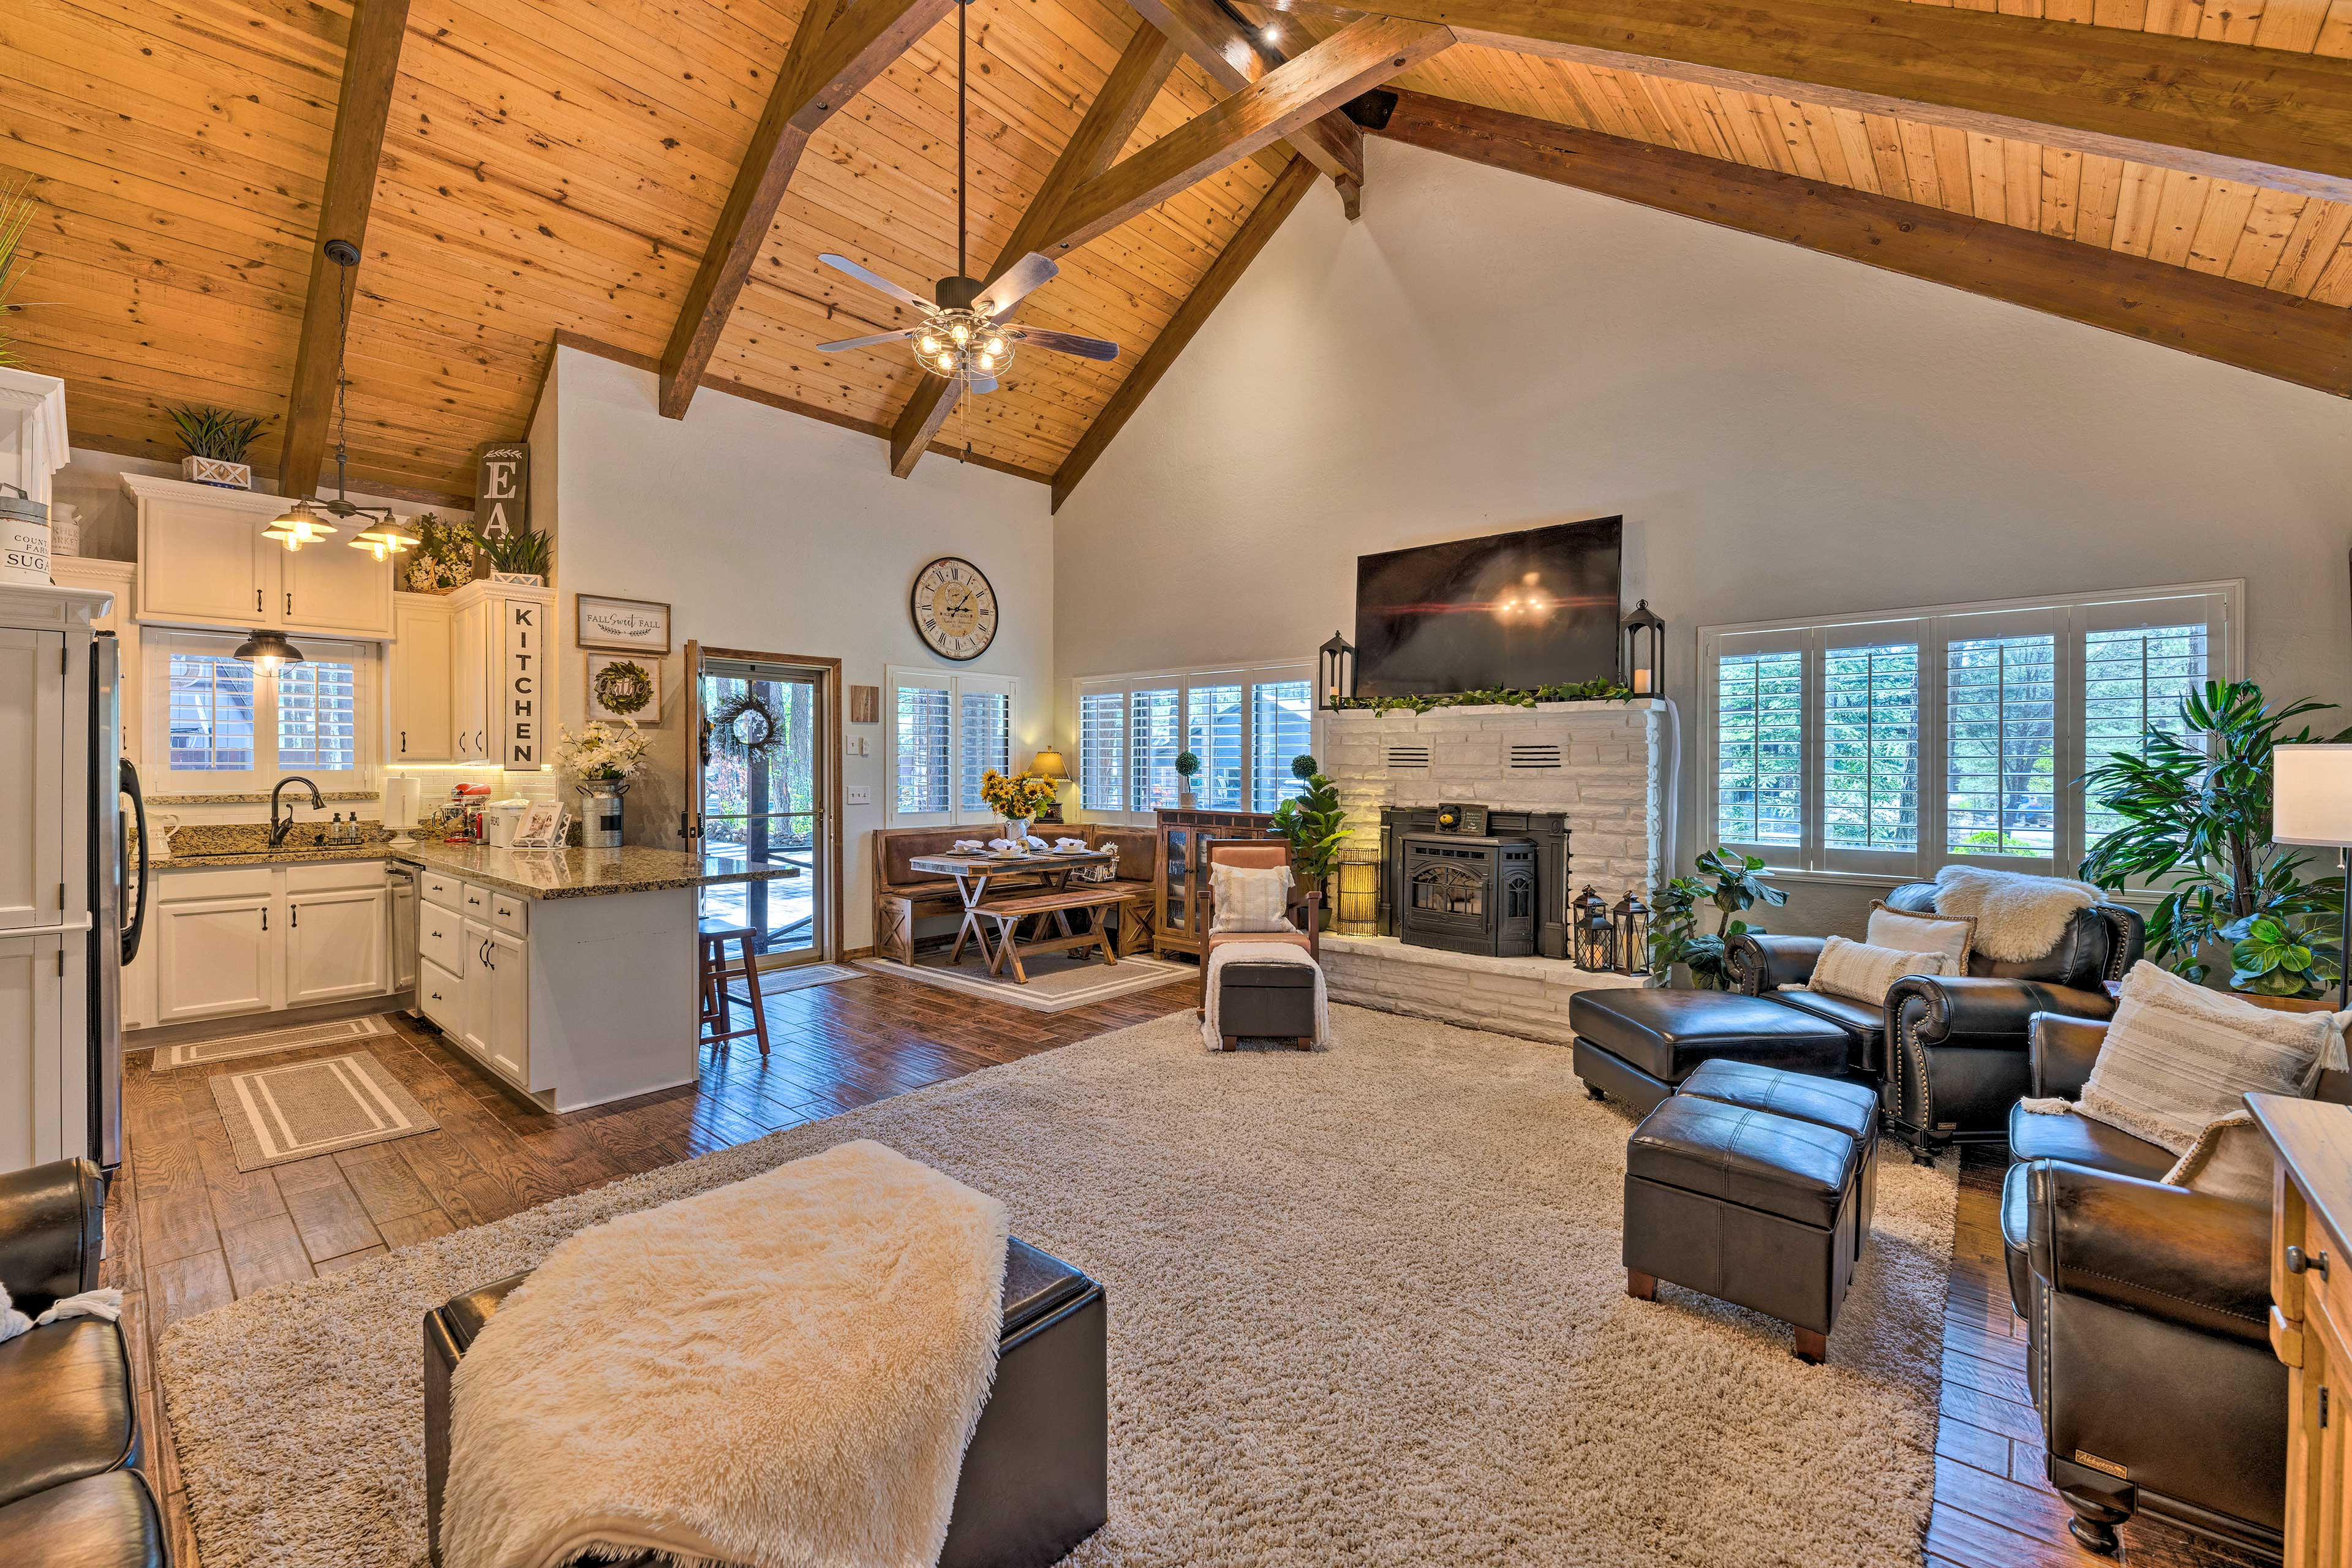 This living space is perfect for spending quality time together.